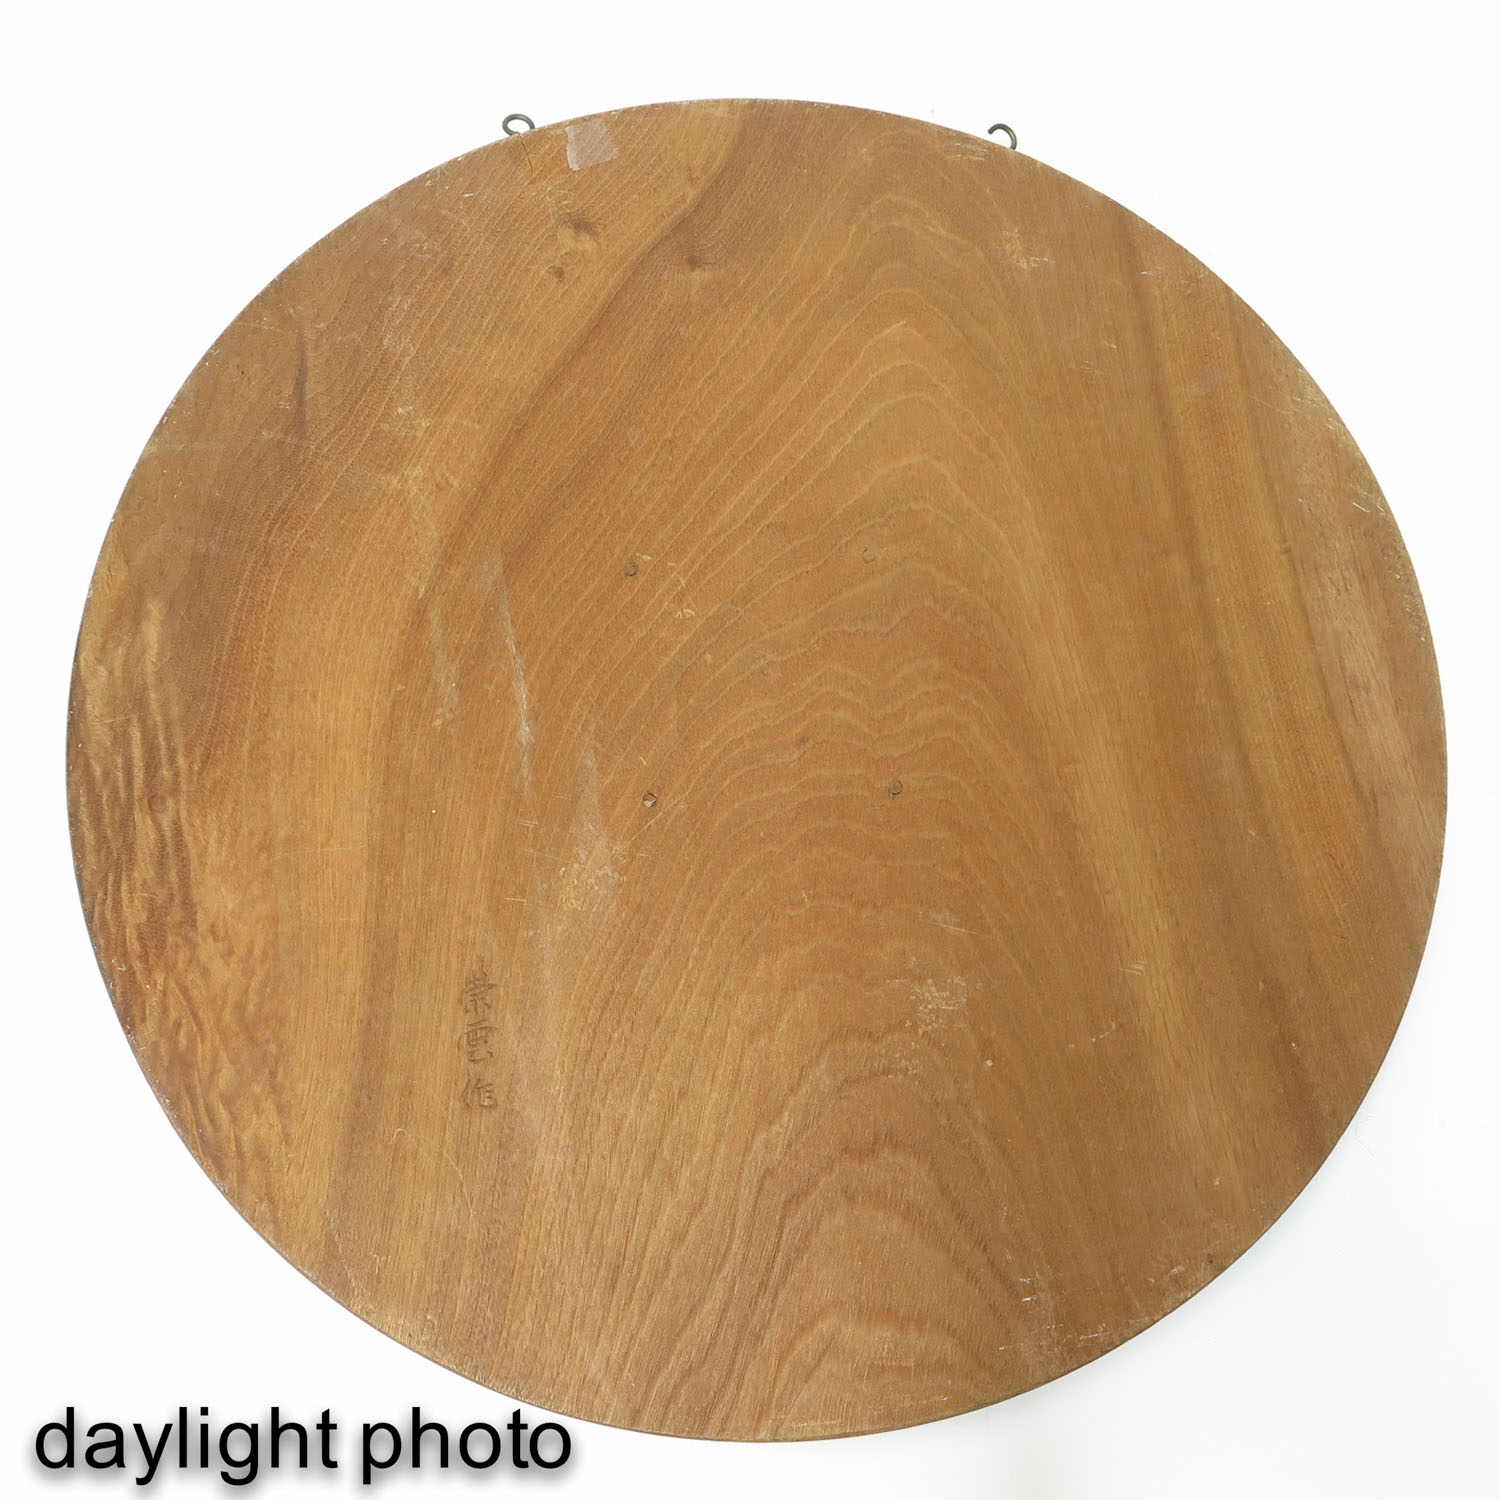 A Round Carved Wood Panel - Image 4 of 5